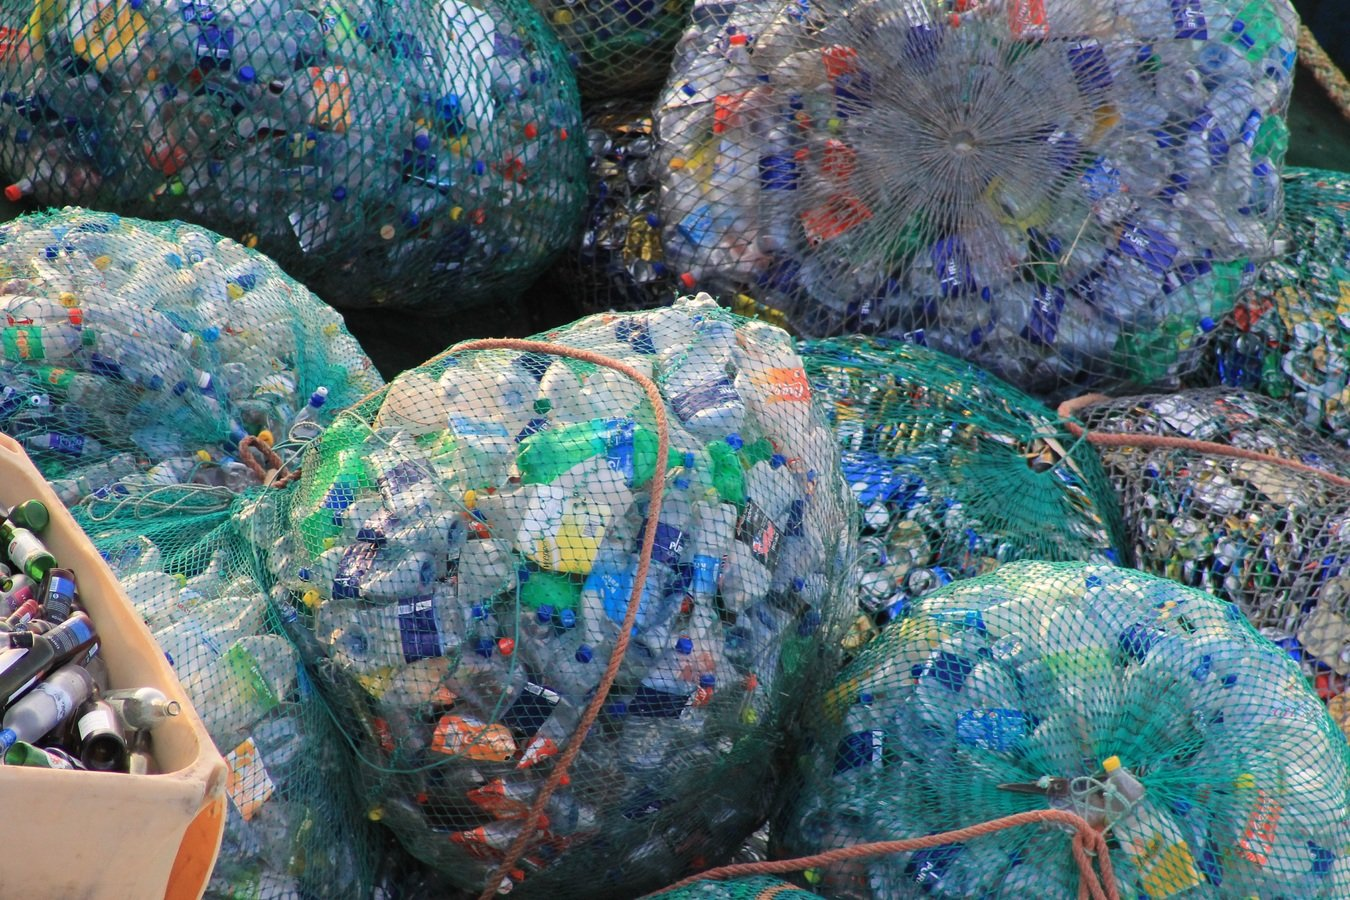 Europe's waste plastic represents more than €10 billion in lost resources each year.